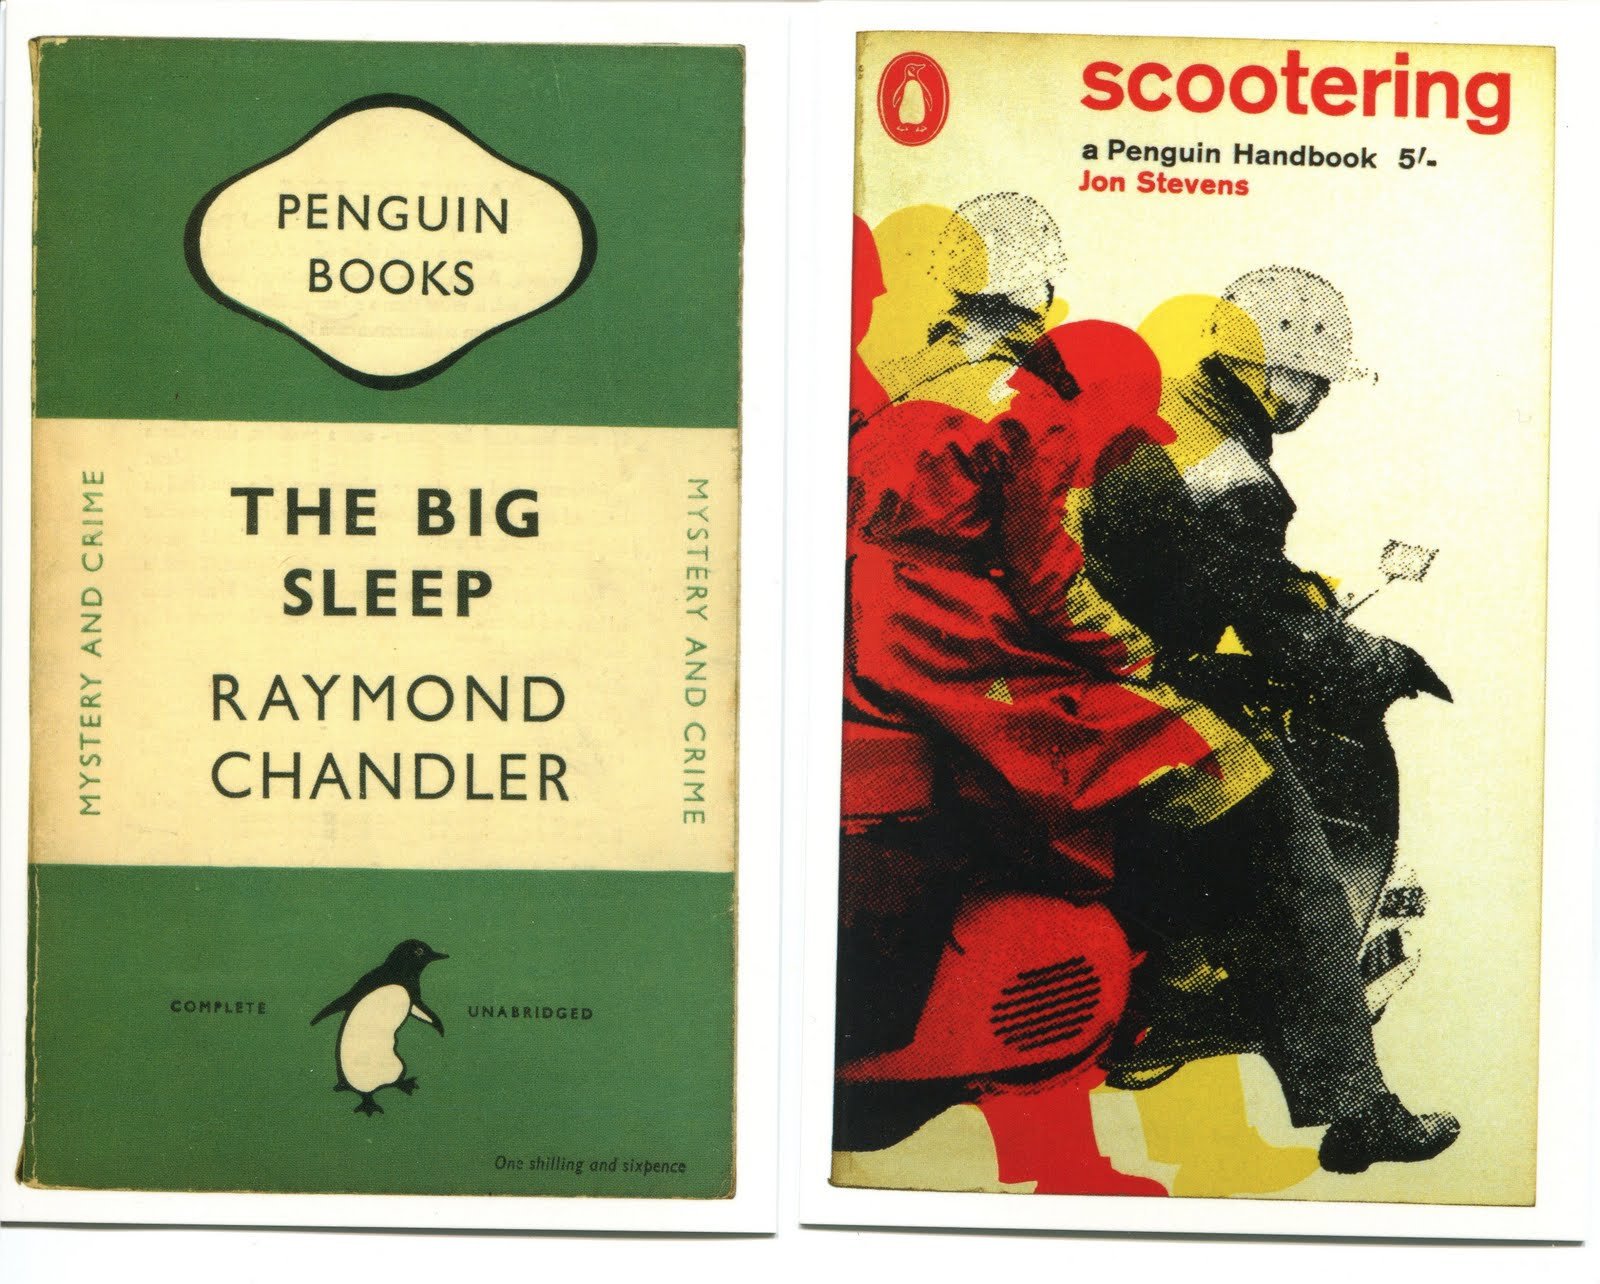 Penguin Book Covers Vintage : Vintage penguin book cover postcards from